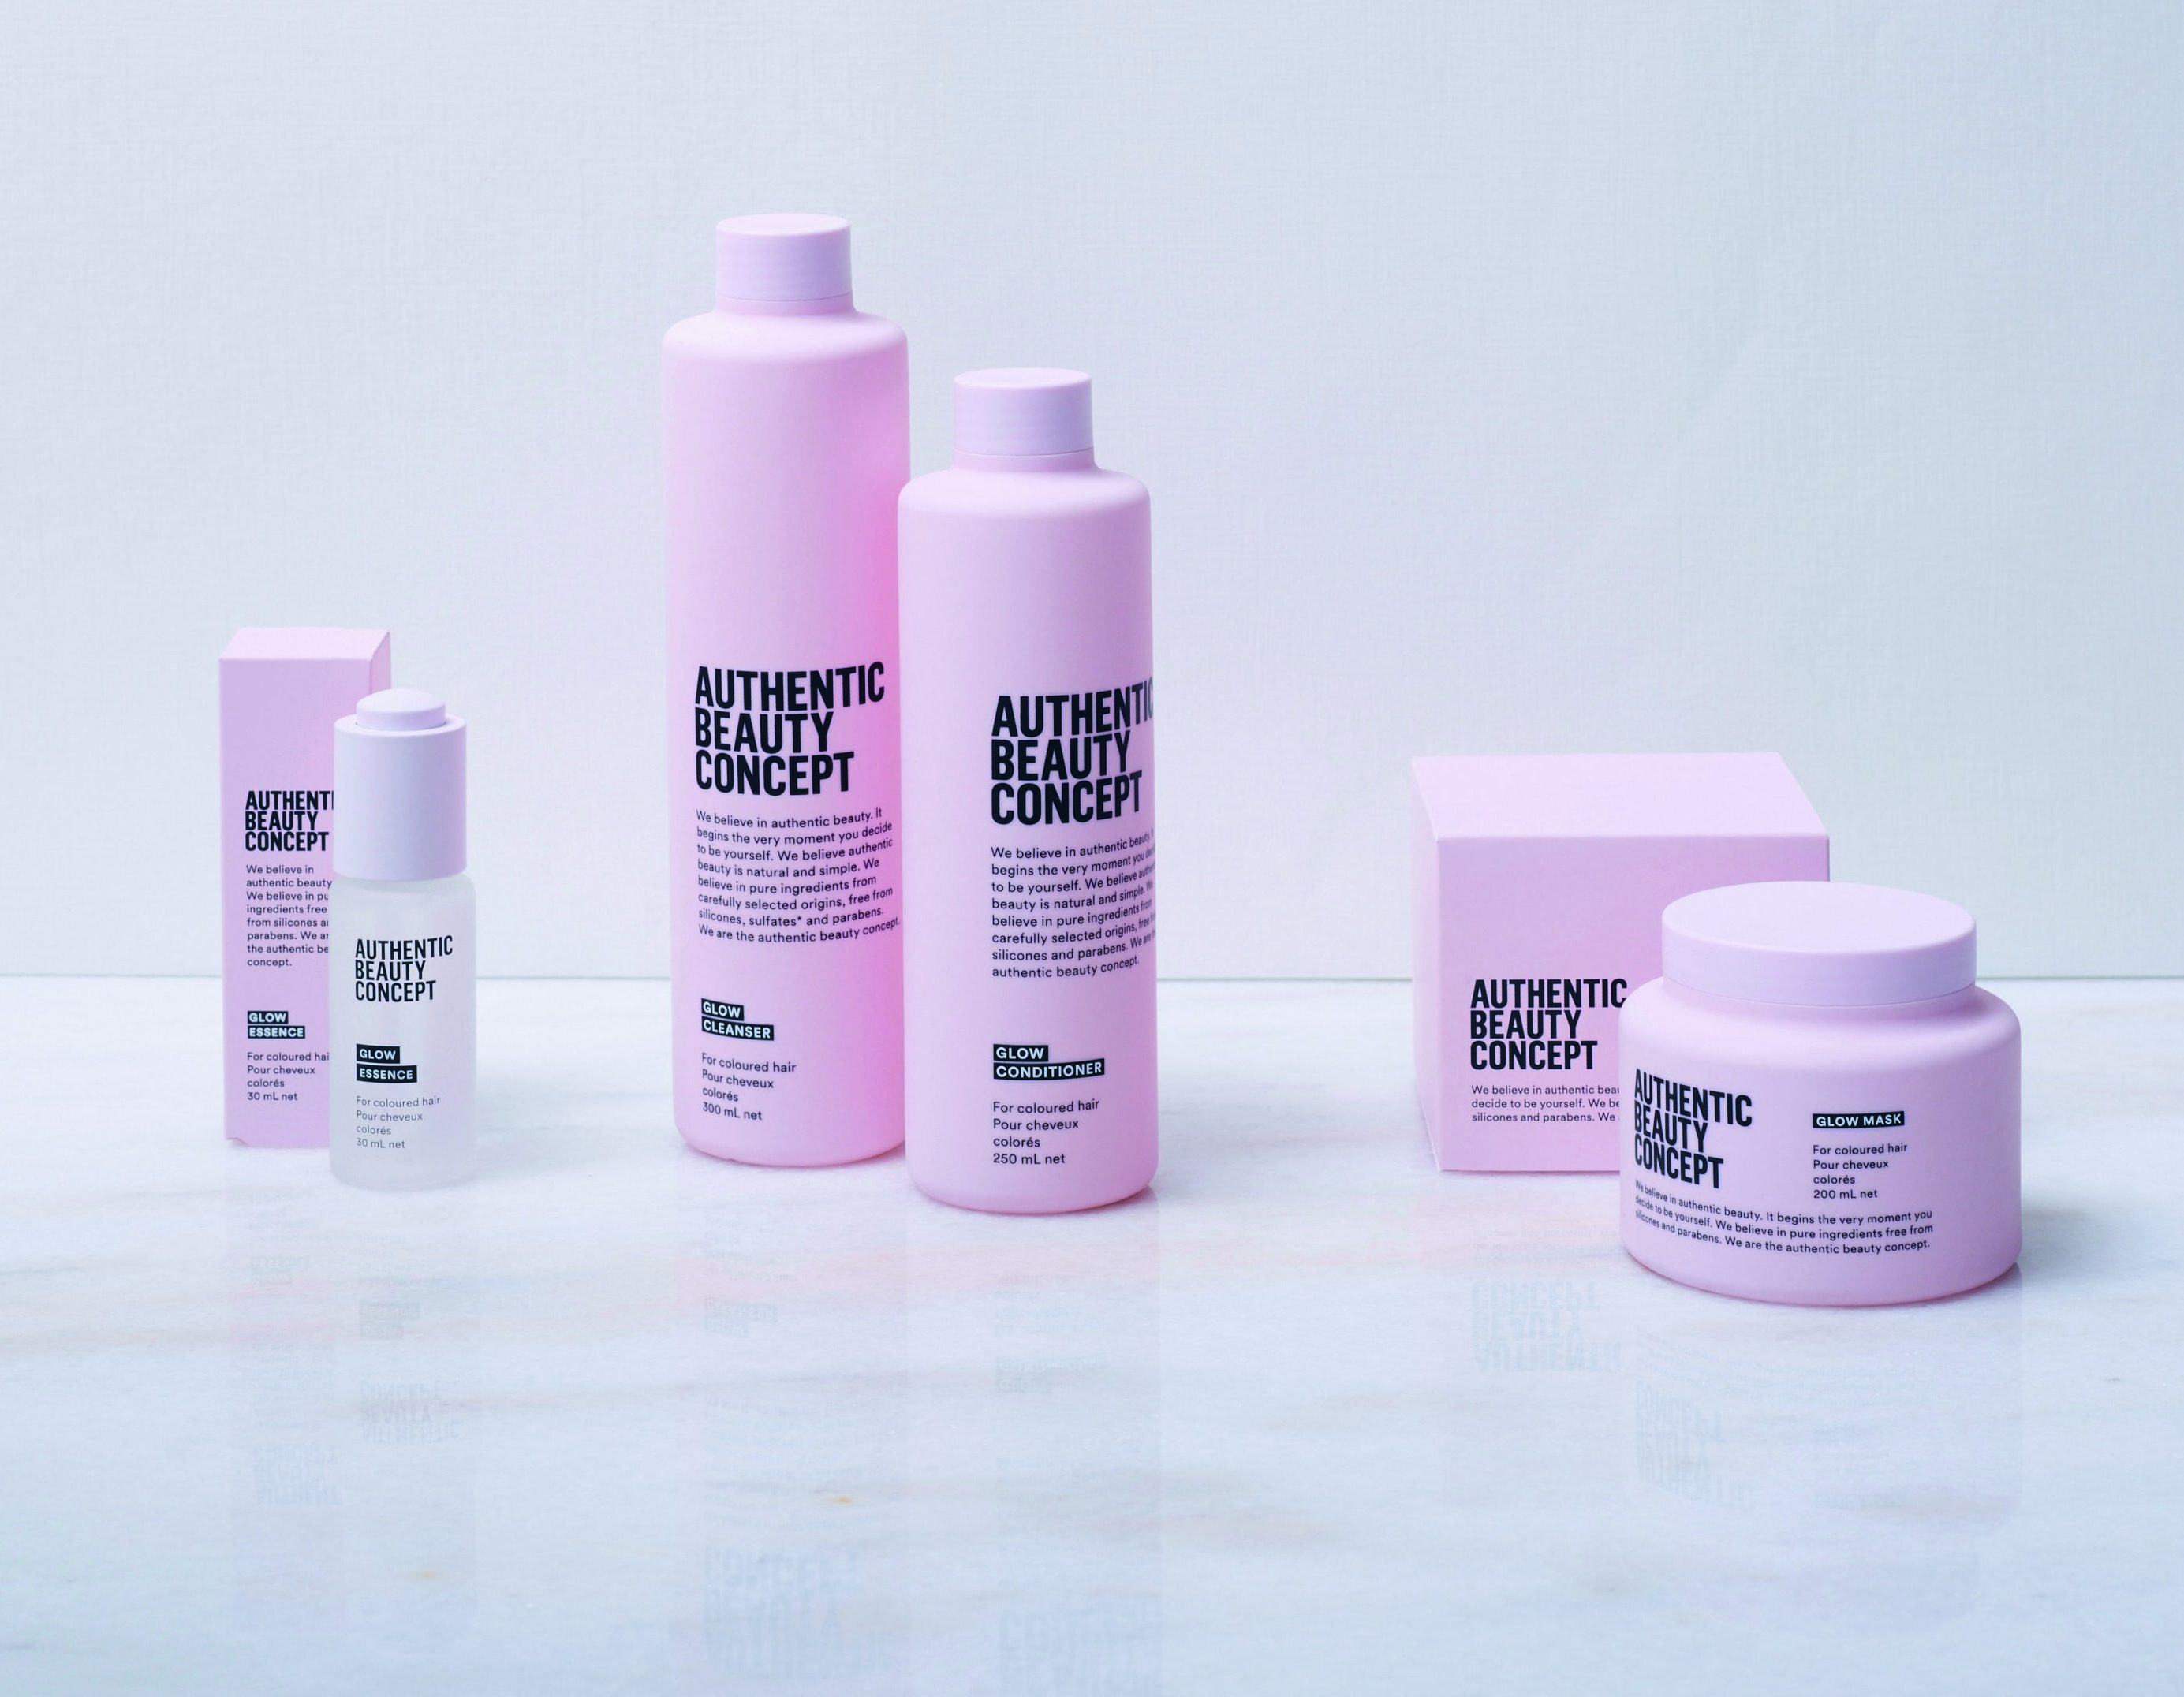 Authentic Beauty Concept launches in the UK 2